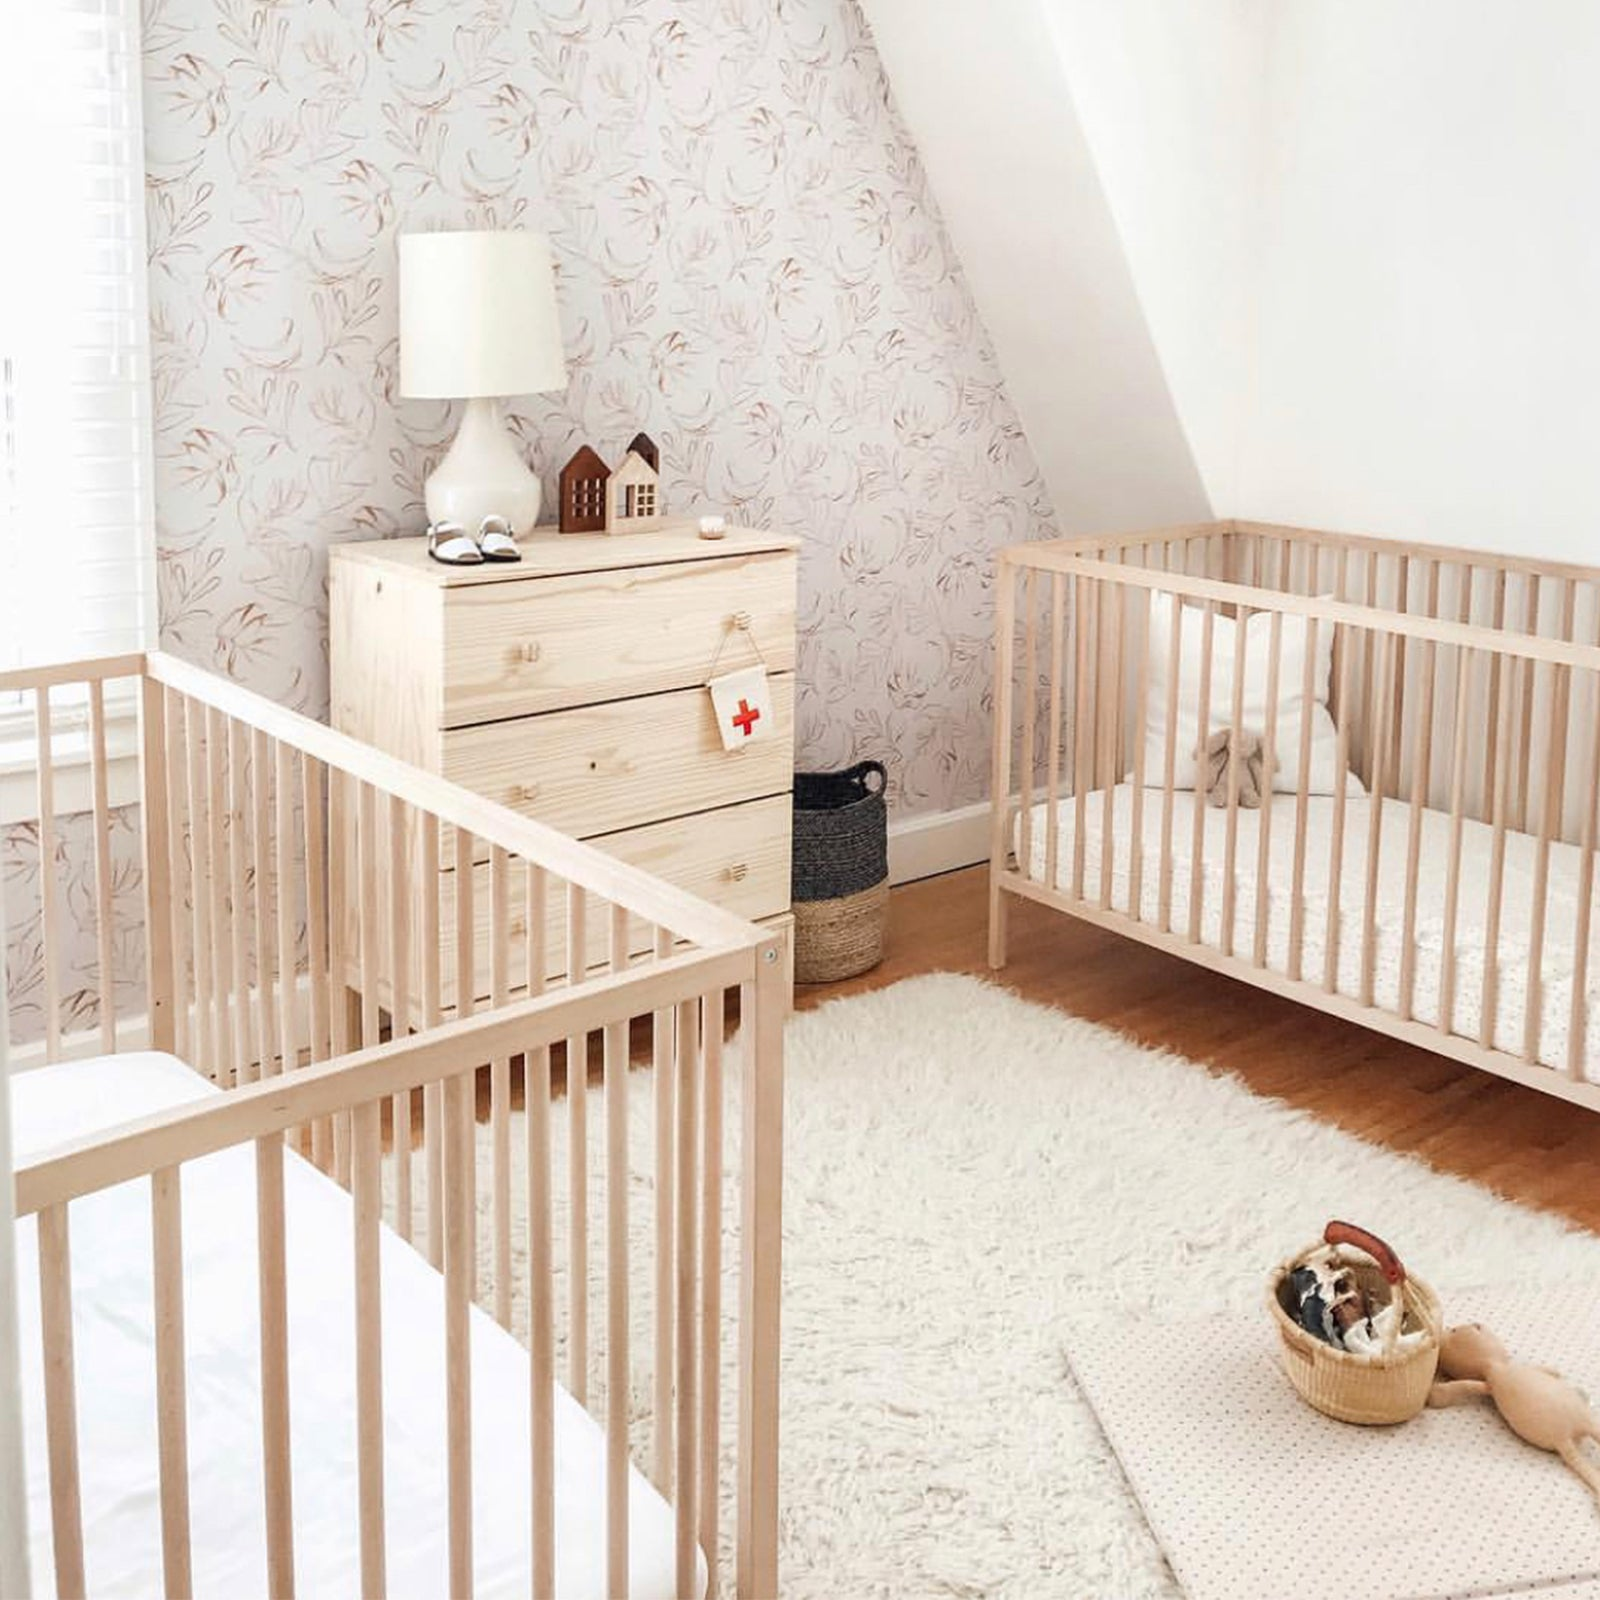 two wooden crib beds made with bamboo crib sheets in a nursery